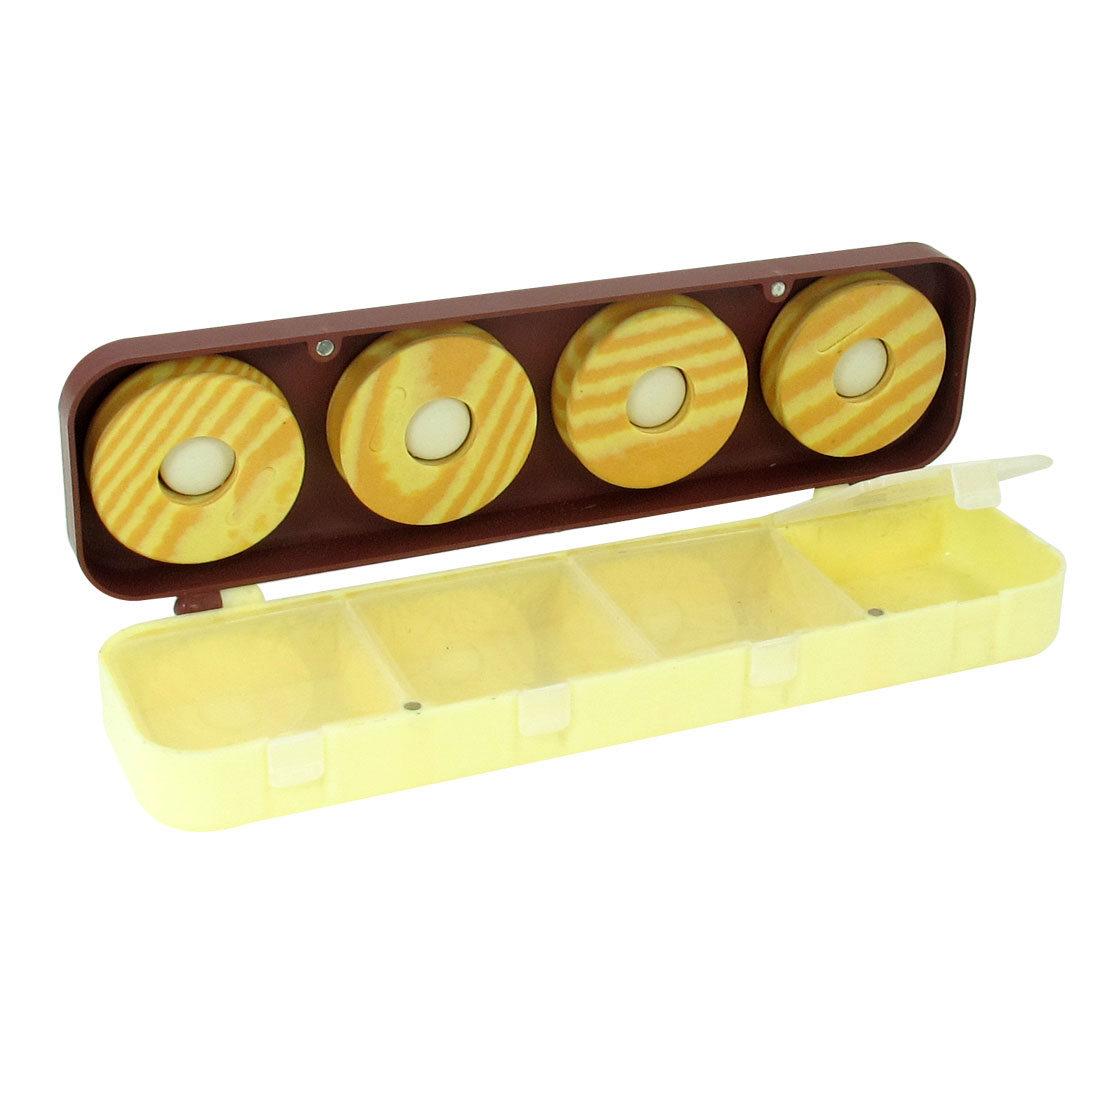 2 Layer 4 Compartments Fishing Utility Case w 4 Beige Fishing line Foam Spools